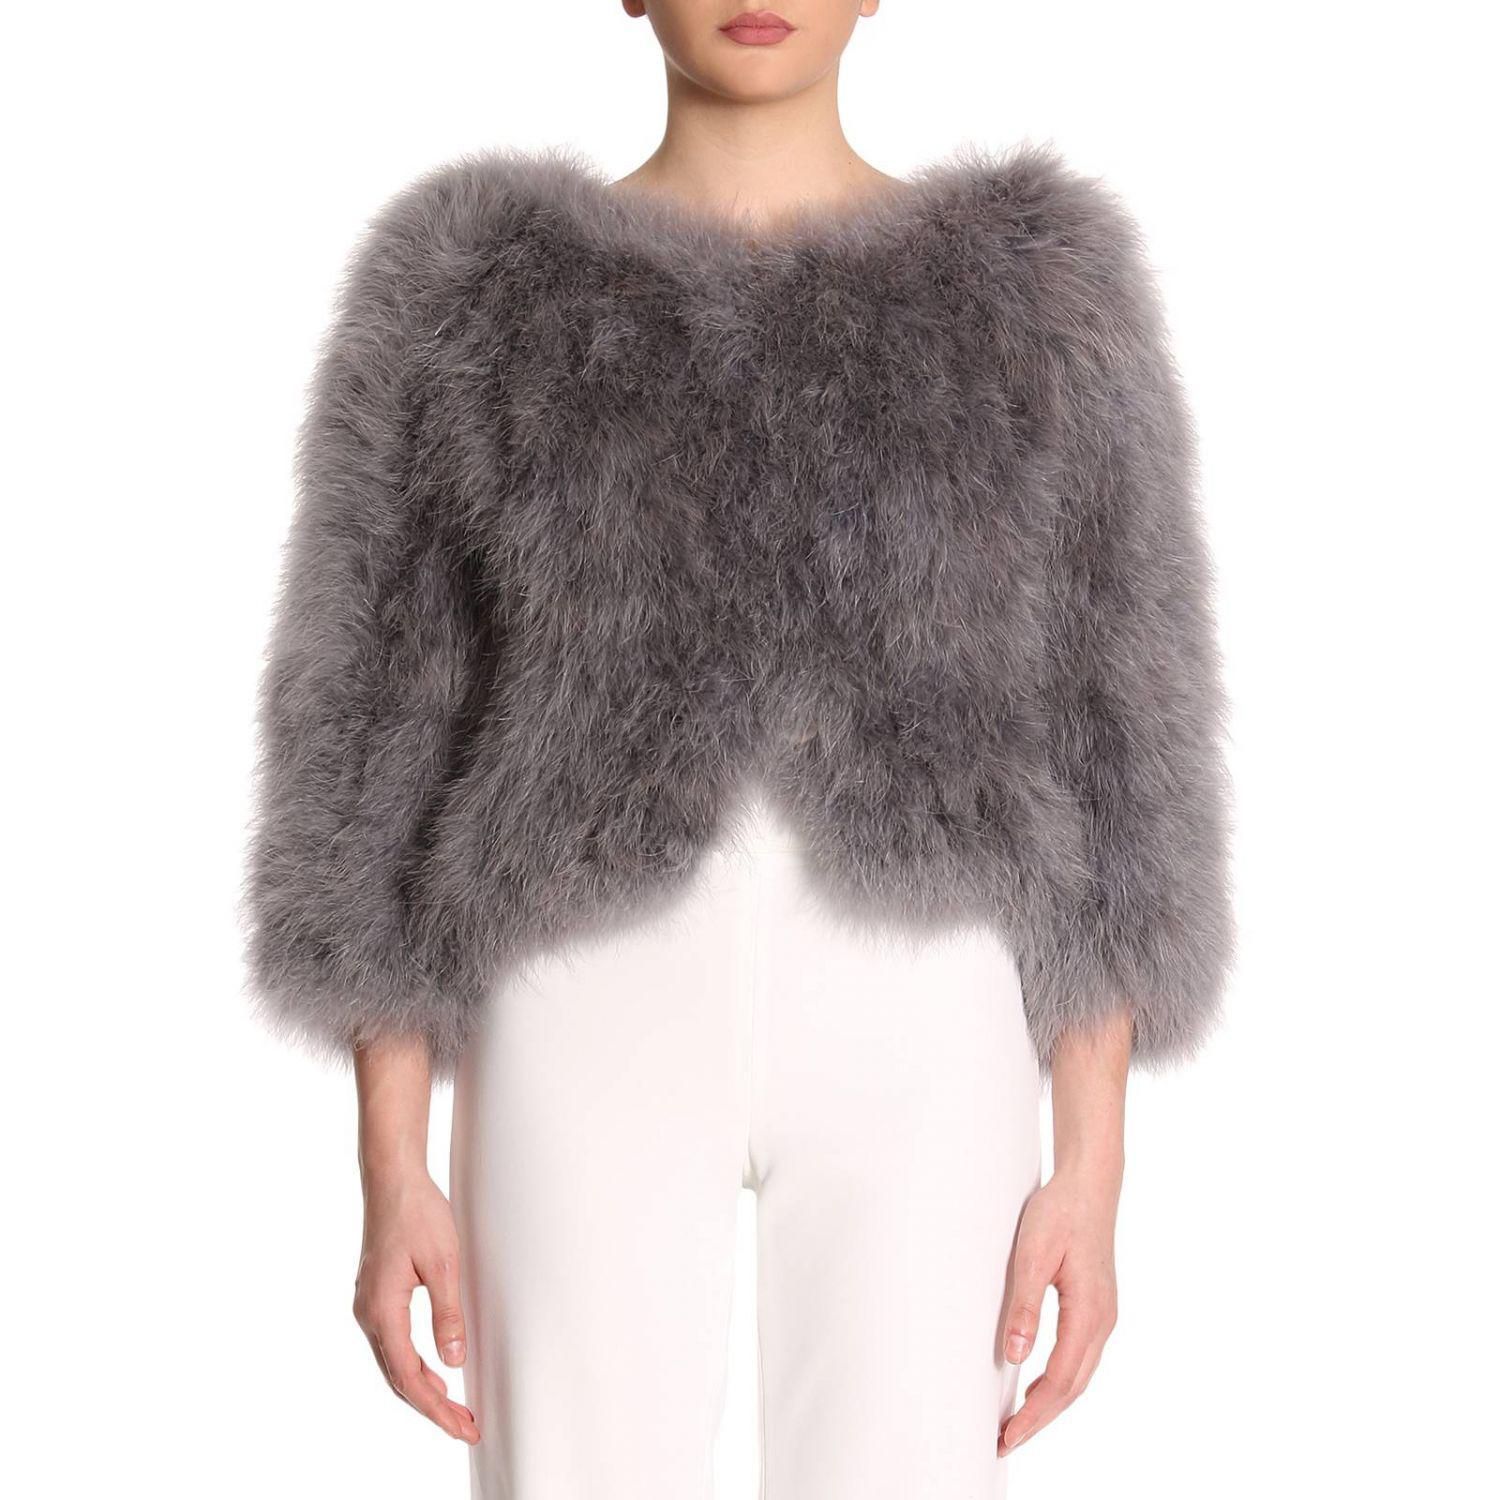 8fef398b737c8d Lyst - Prada Fur Coats Women in Gray